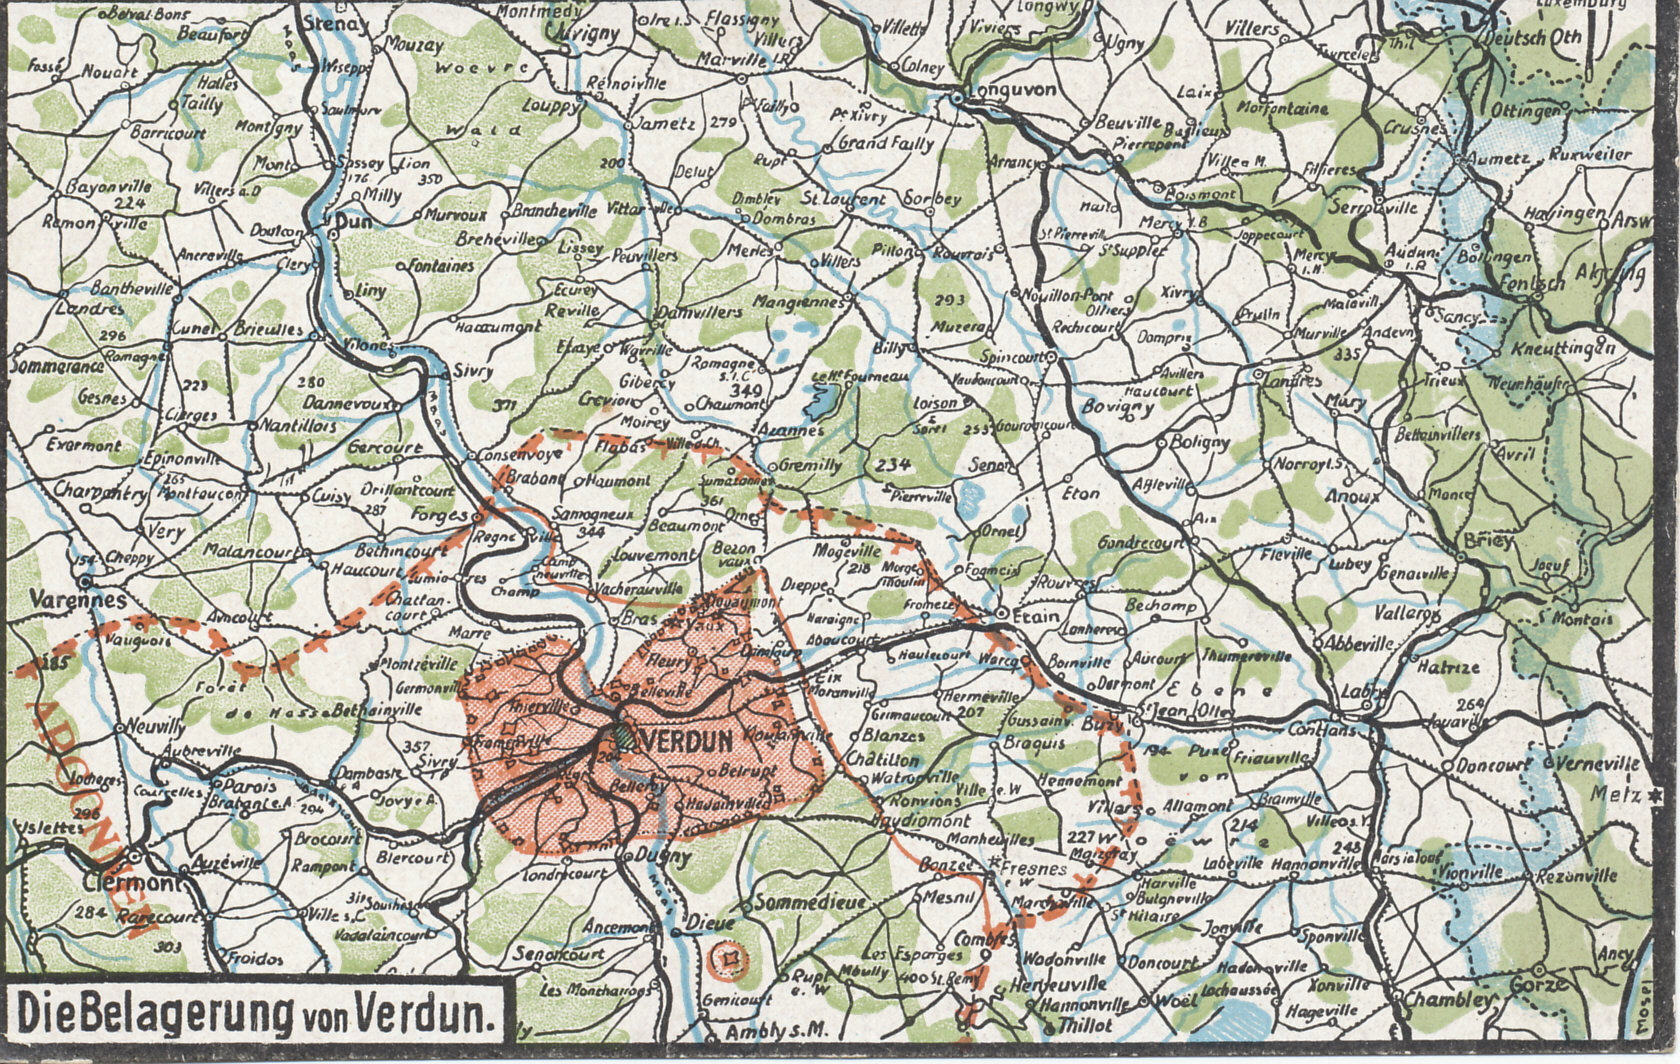 Postcard map with of Verdun, France, showing the forts of Douaumont and Vaux and the German siege line.